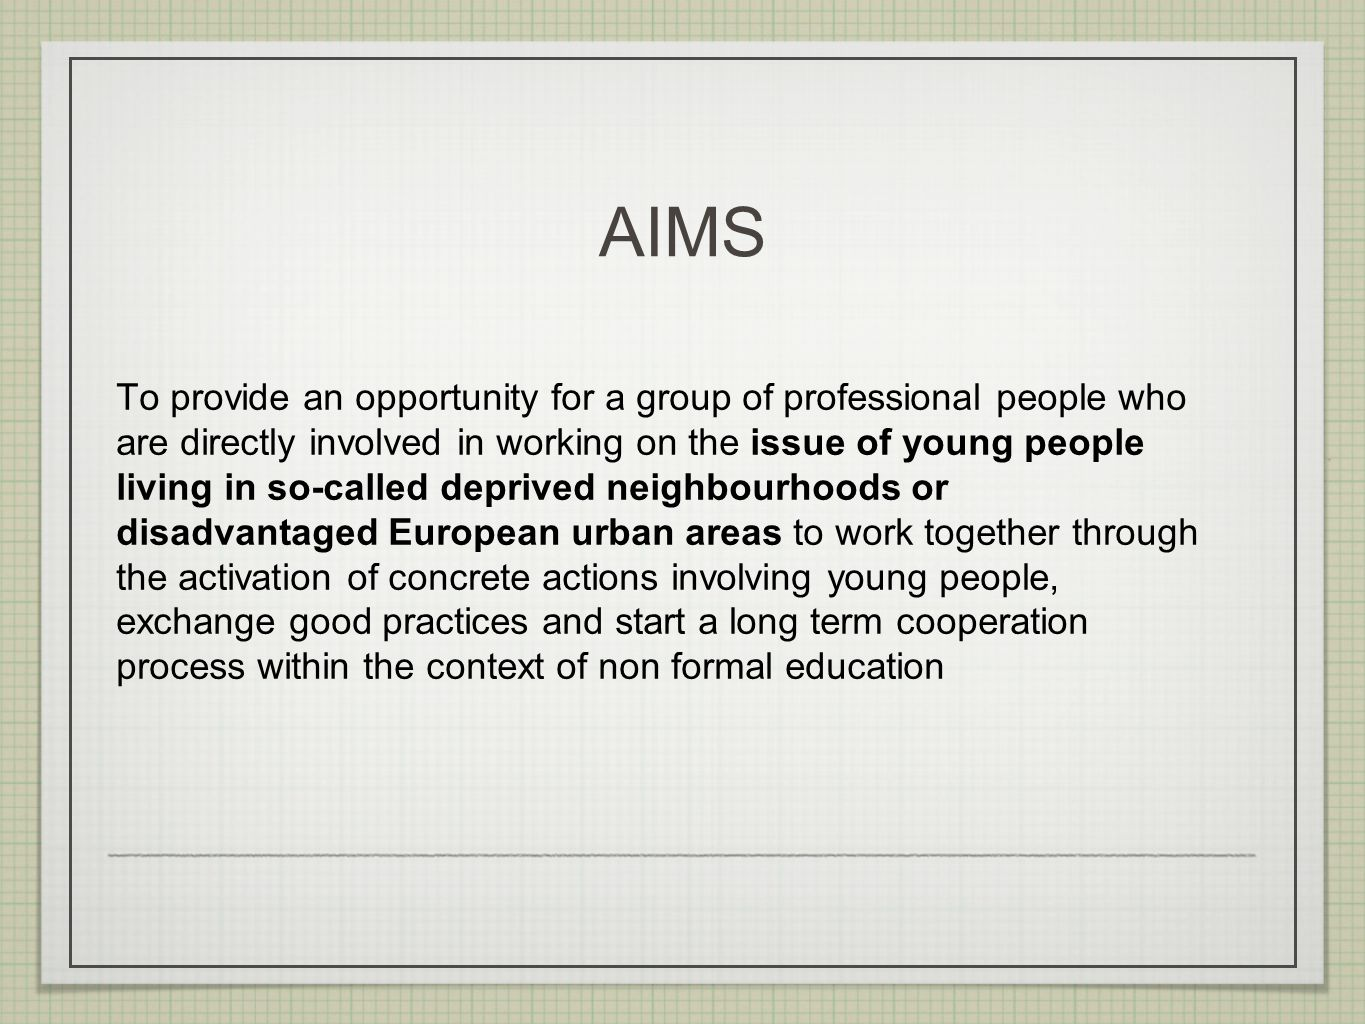 AIMS To provide an opportunity for a group of professional people who are directly involved in working on the issue of young people living in so-called deprived neighbourhoods or disadvantaged European urban areas to work together through the activation of concrete actions involving young people, exchange good practices and start a long term cooperation process within the context of non formal education